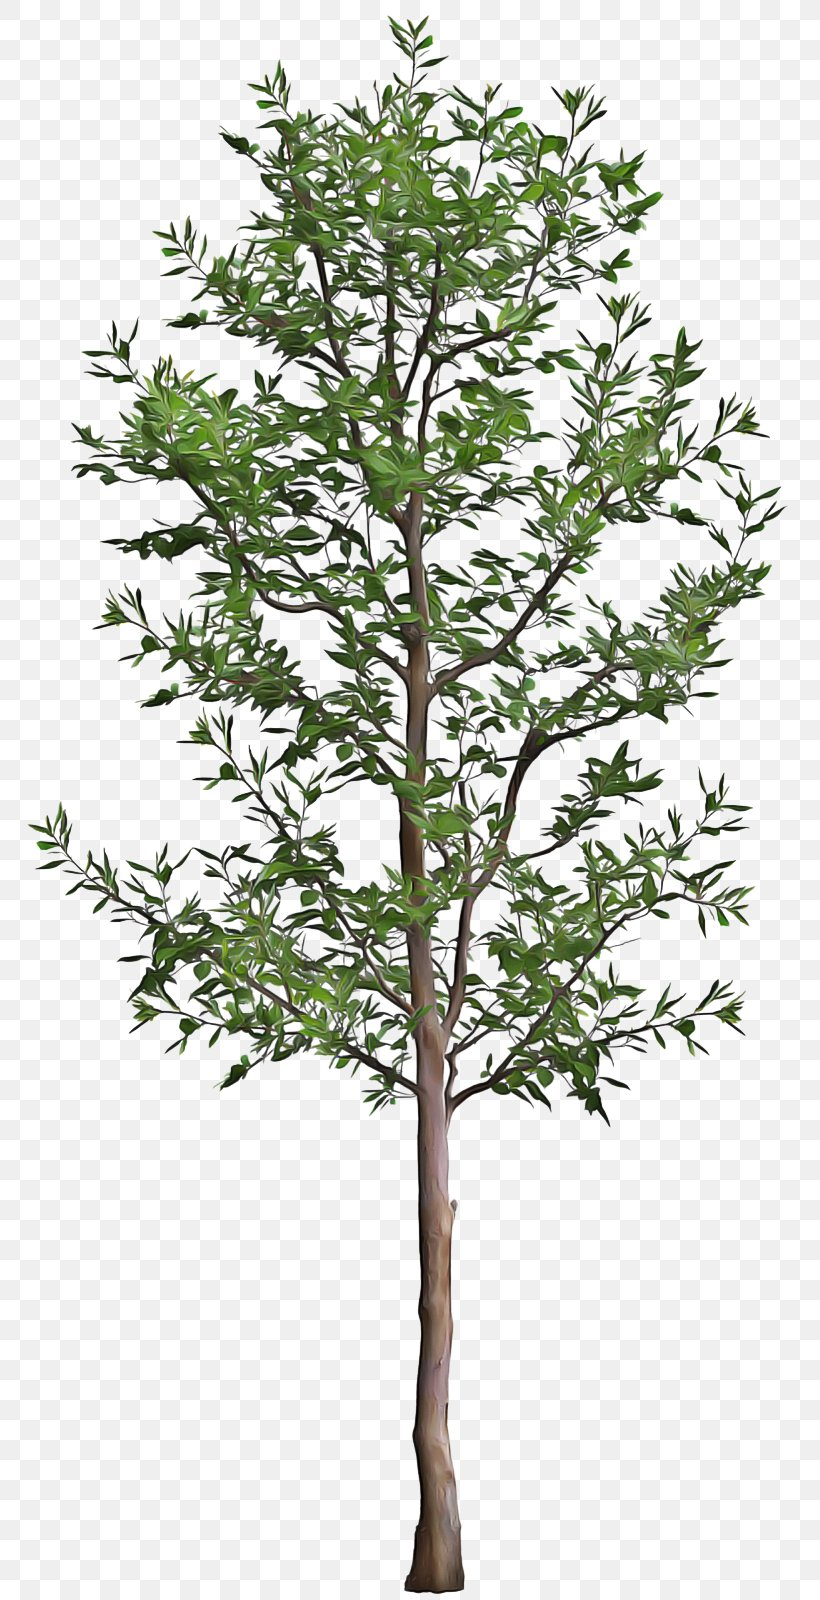 Tree Plant Flower Branch Woody Plant, PNG, 767x1600px, Tree, American Larch, Branch, Flower, Flowering Plant Download Free